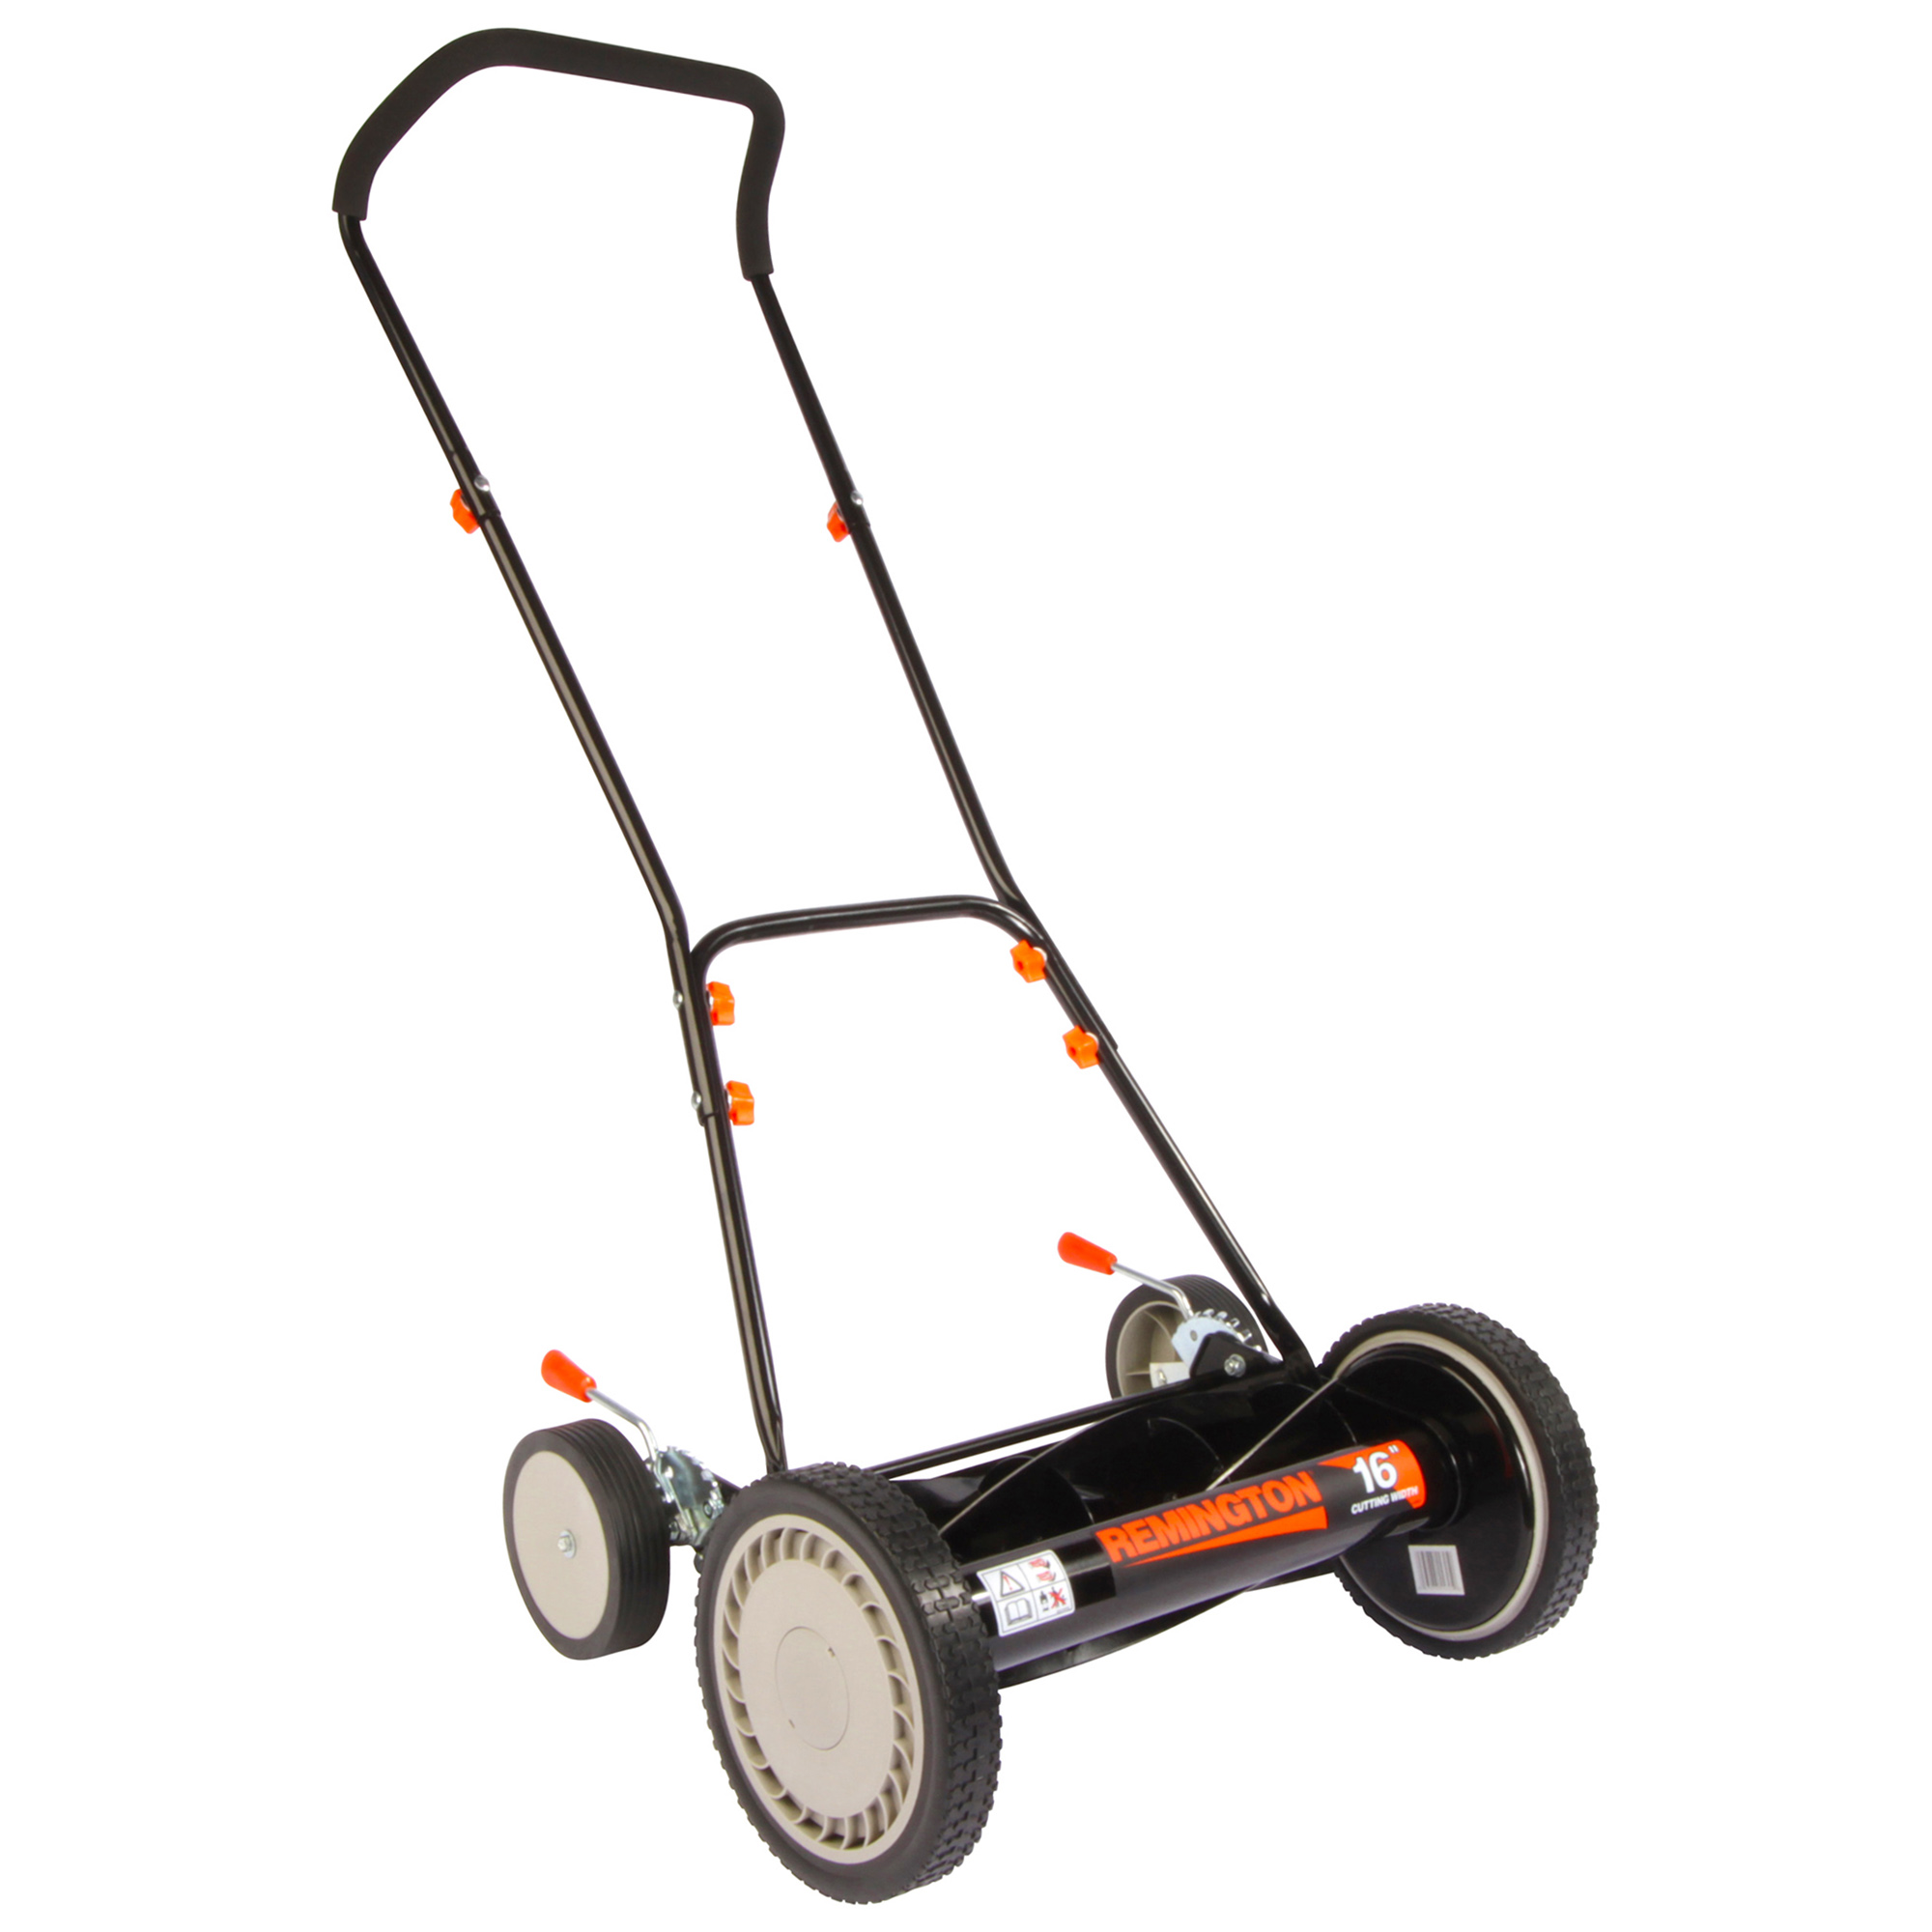 Remington 15A 16 in Push Reel Mower Walmart